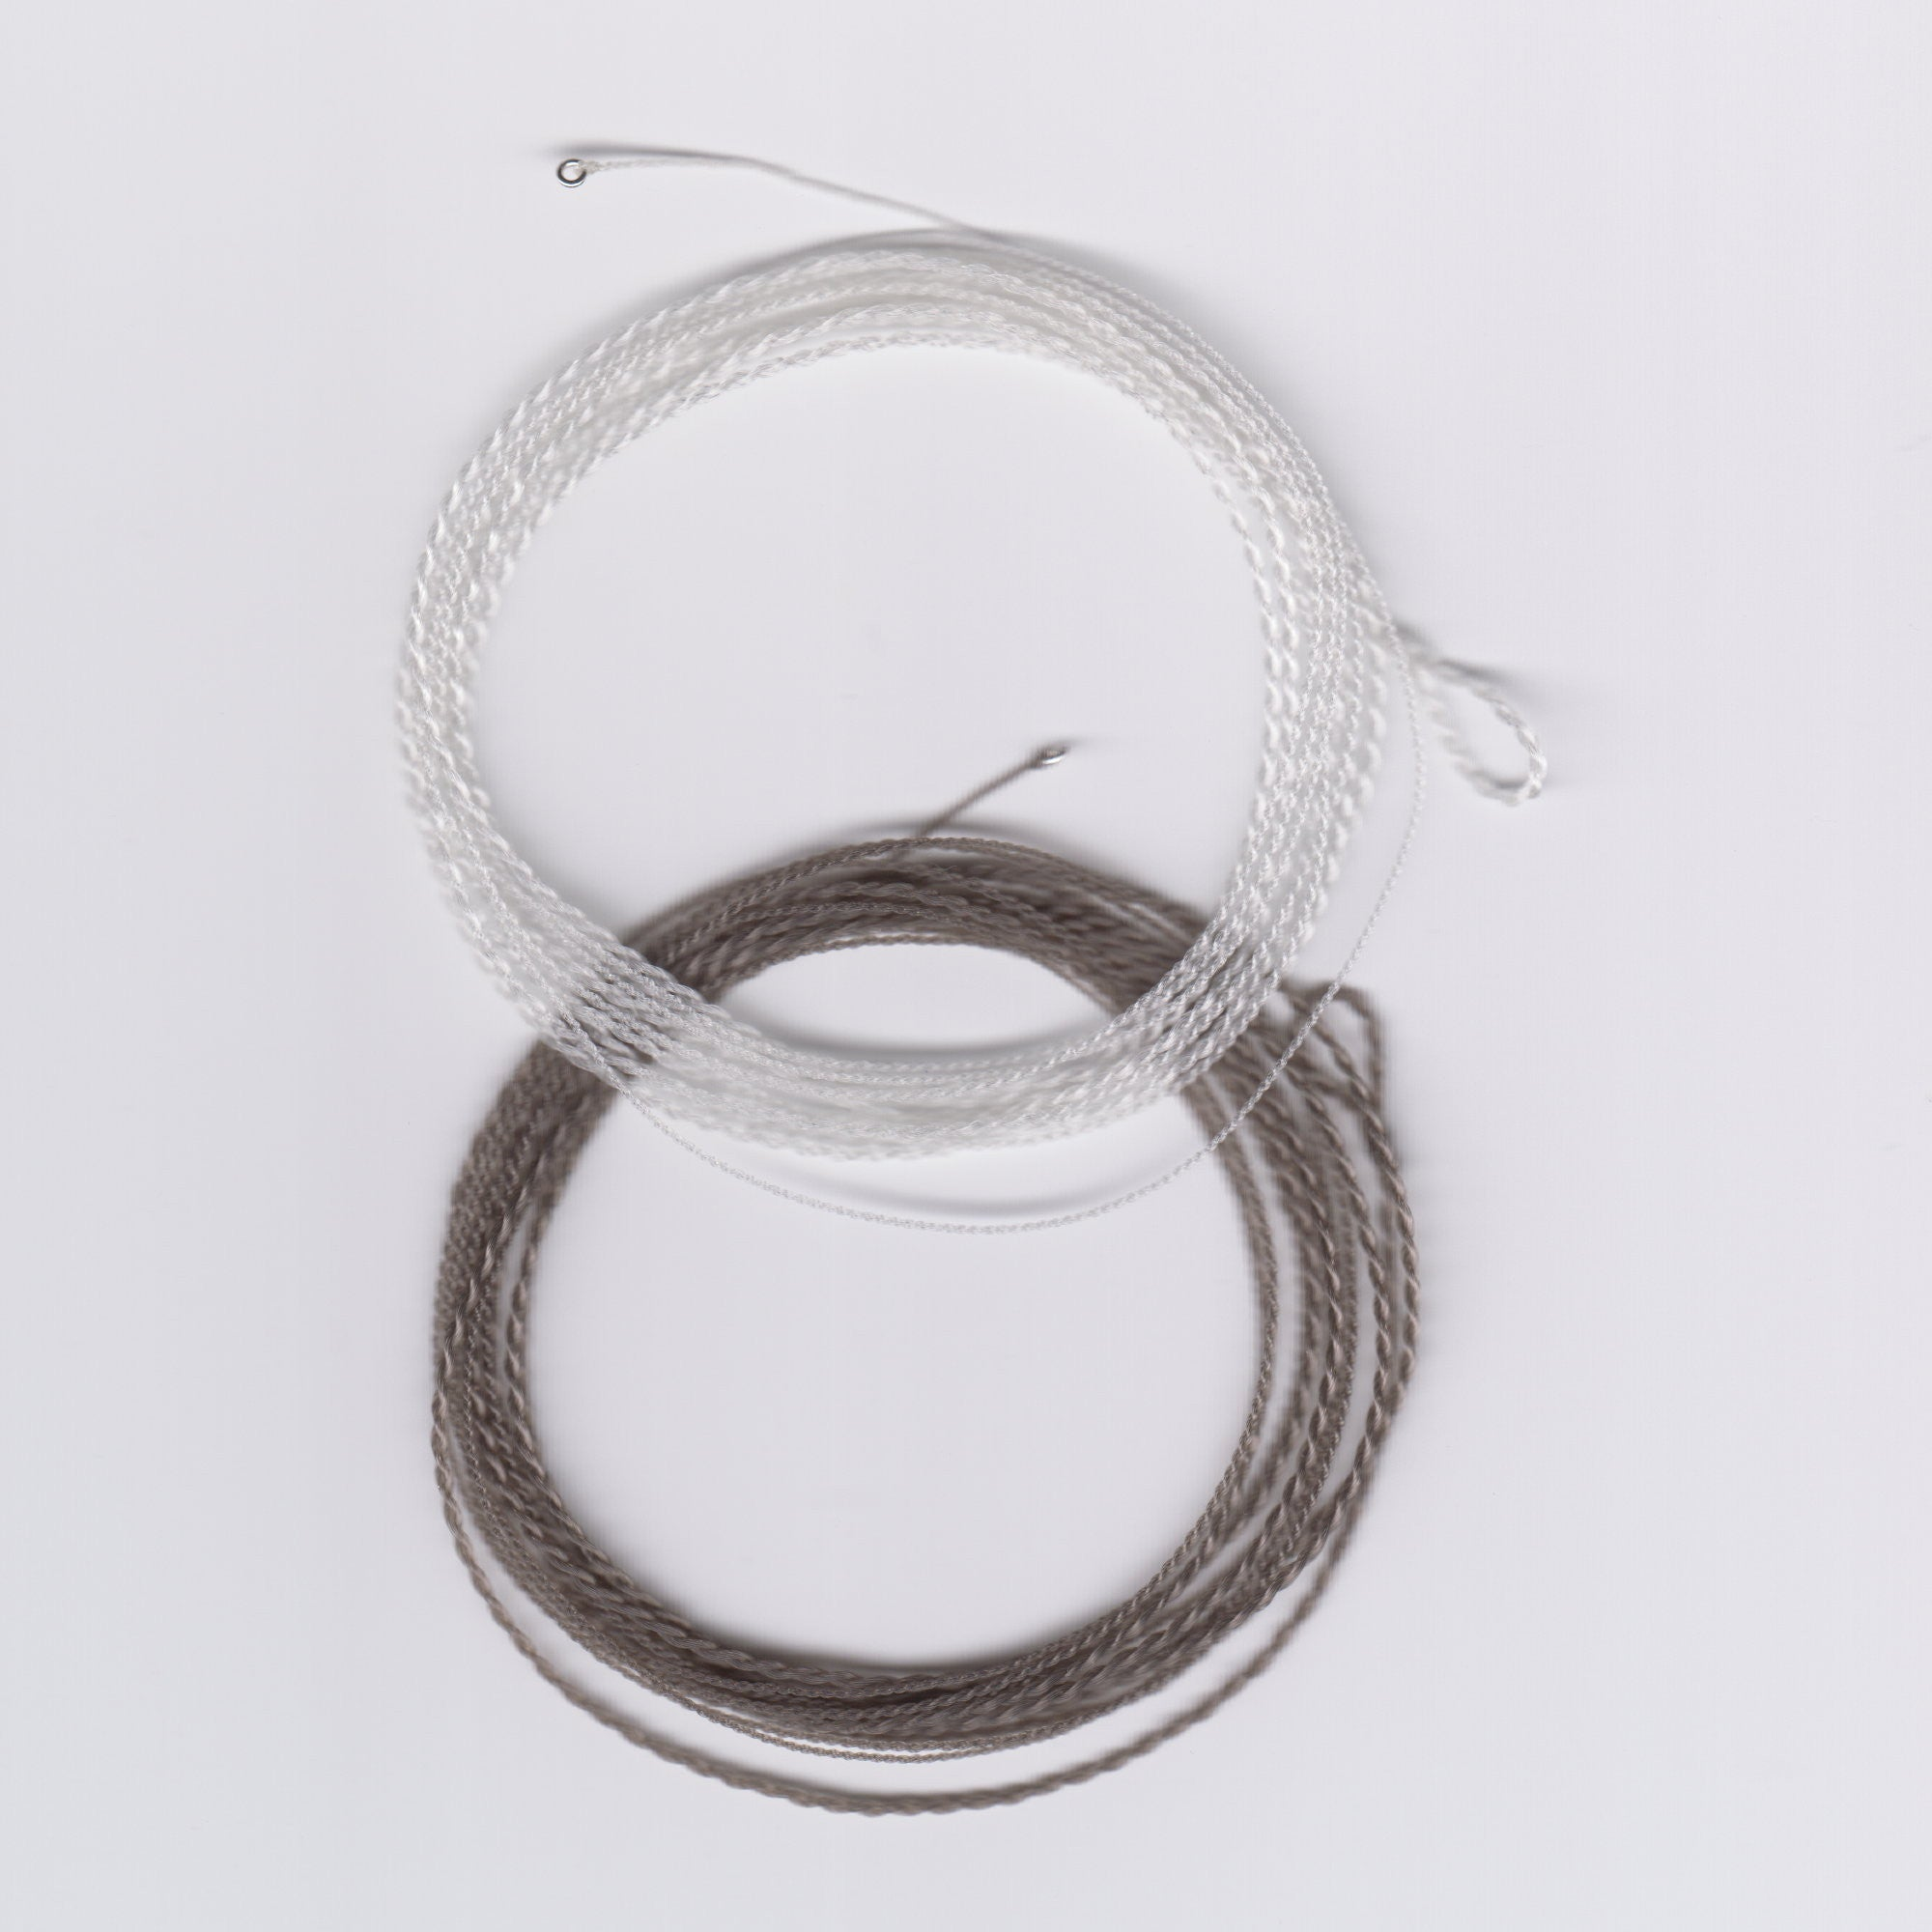 Uni-thread Furled Fly Fishing Leader for 3-6 wt flylines